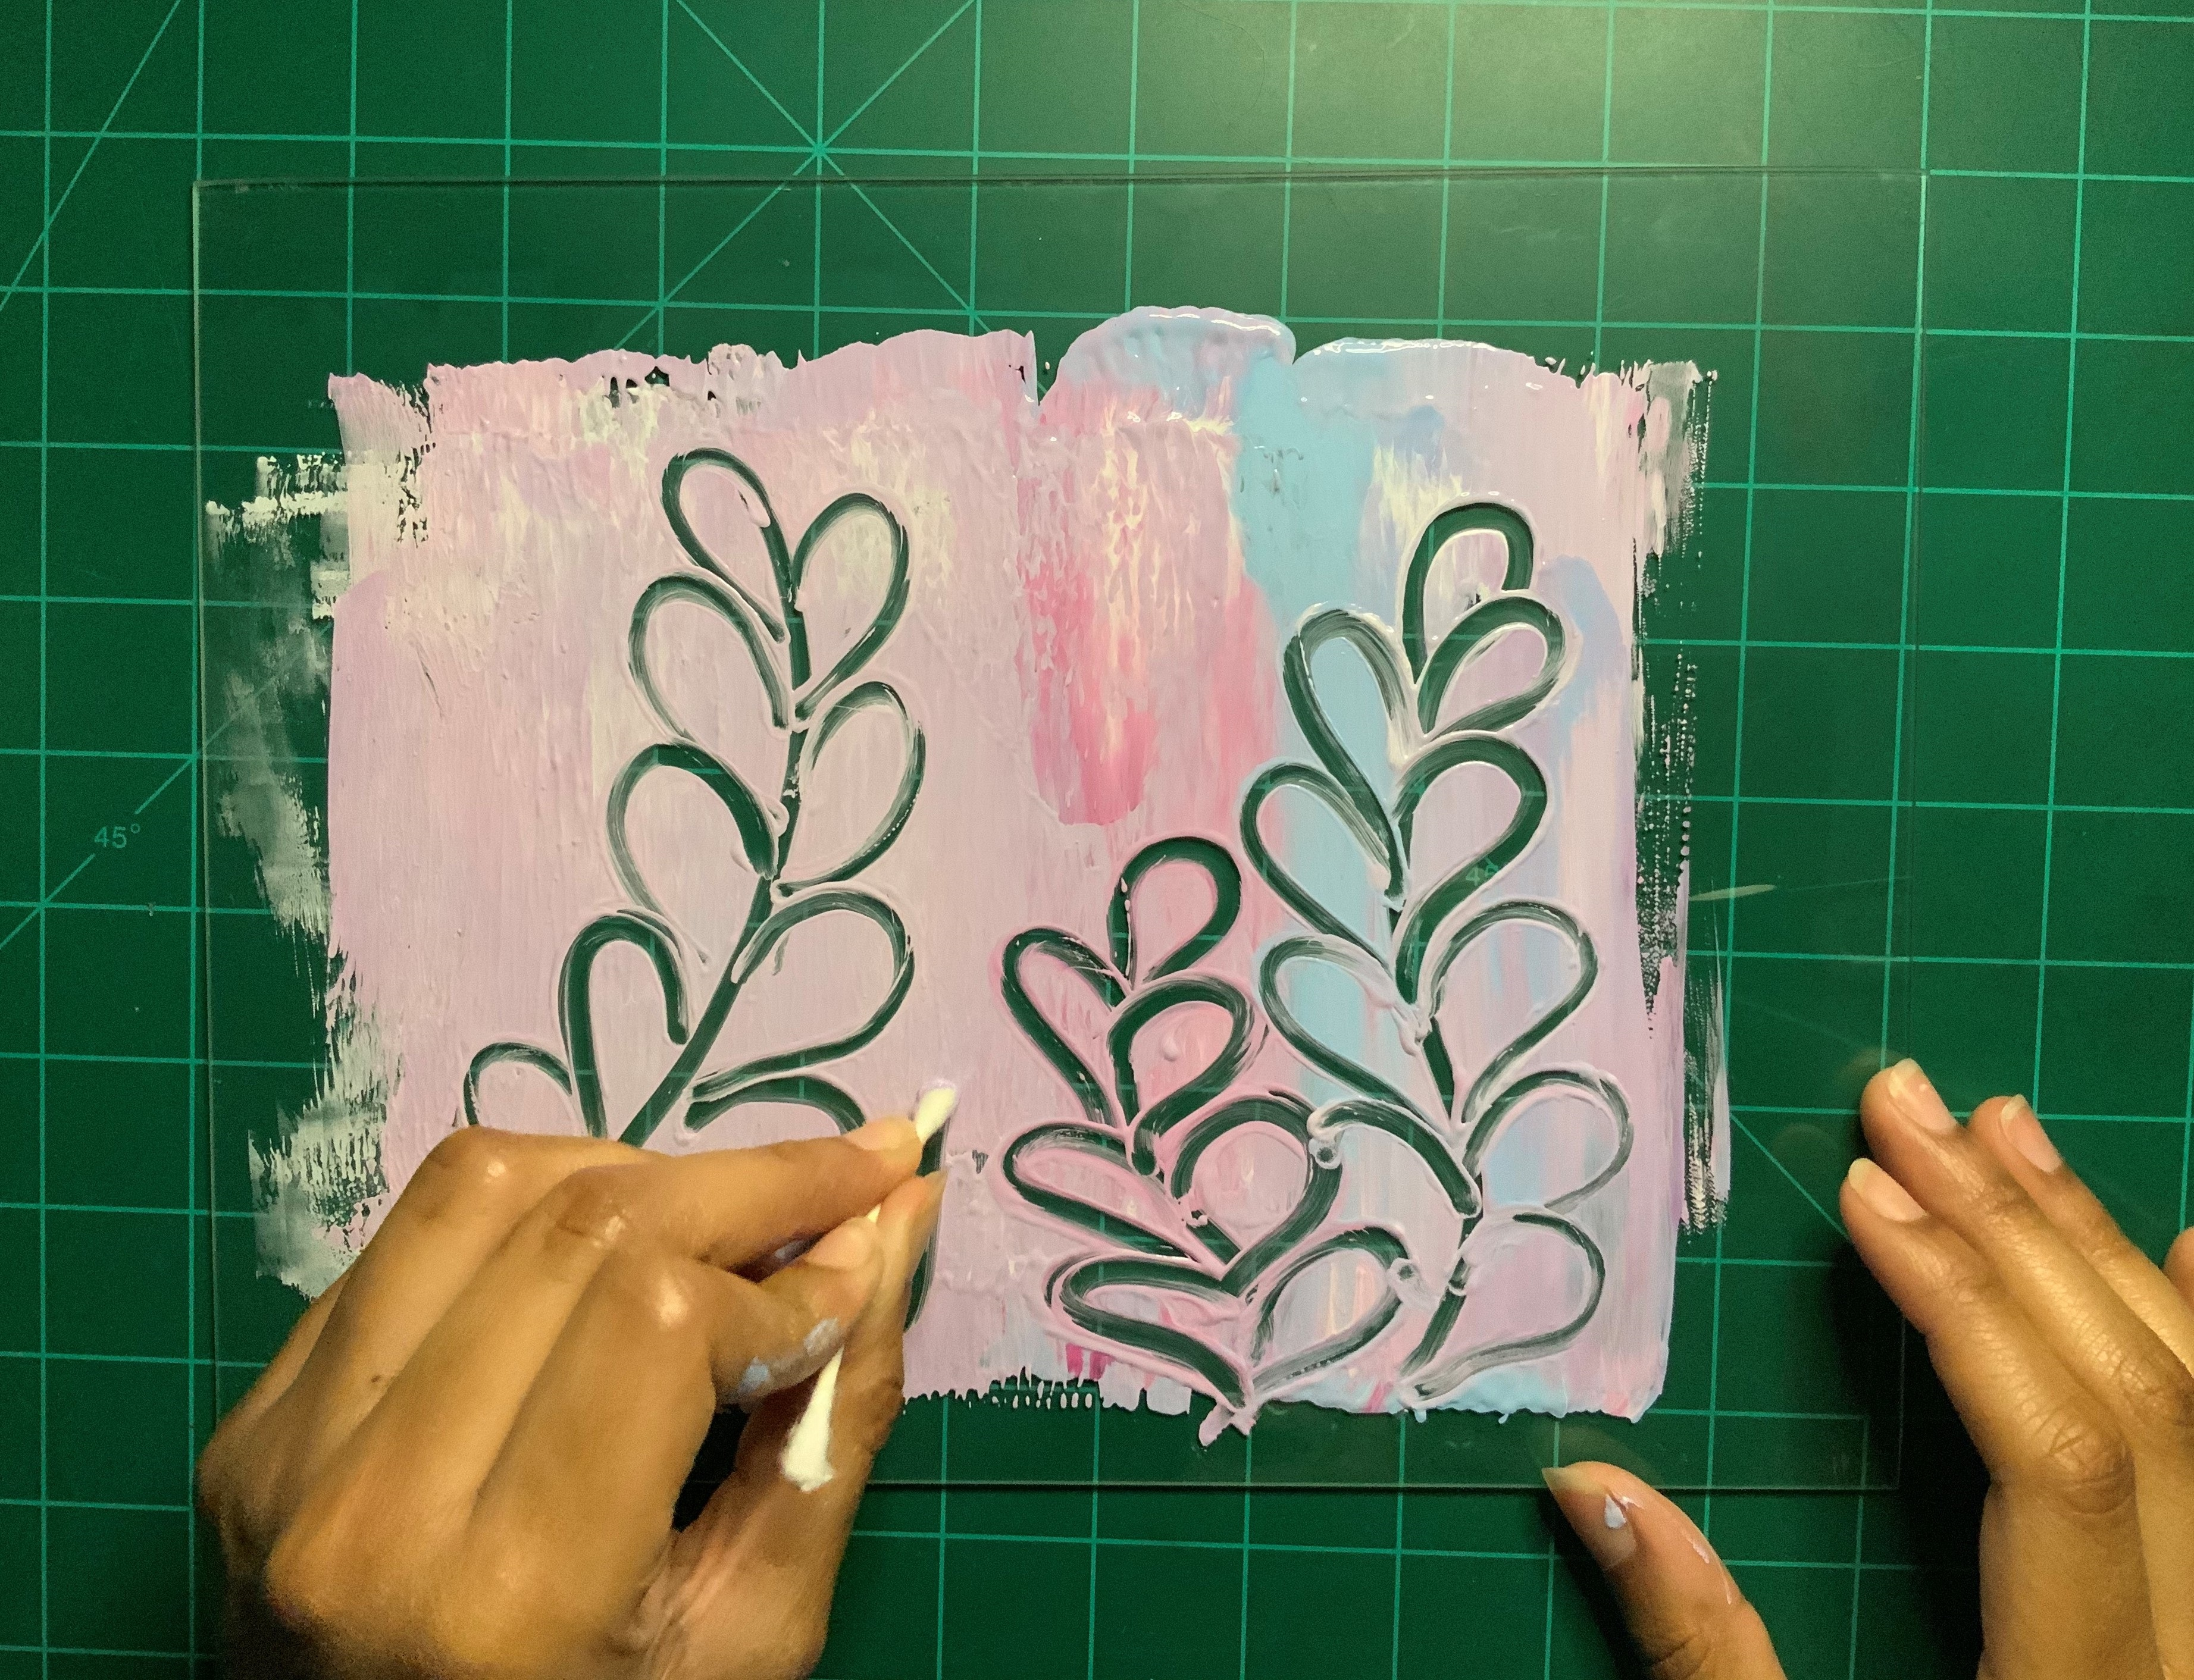 Left hand uses a Q-tip to draw floral shapes in pastel pink and blue paint